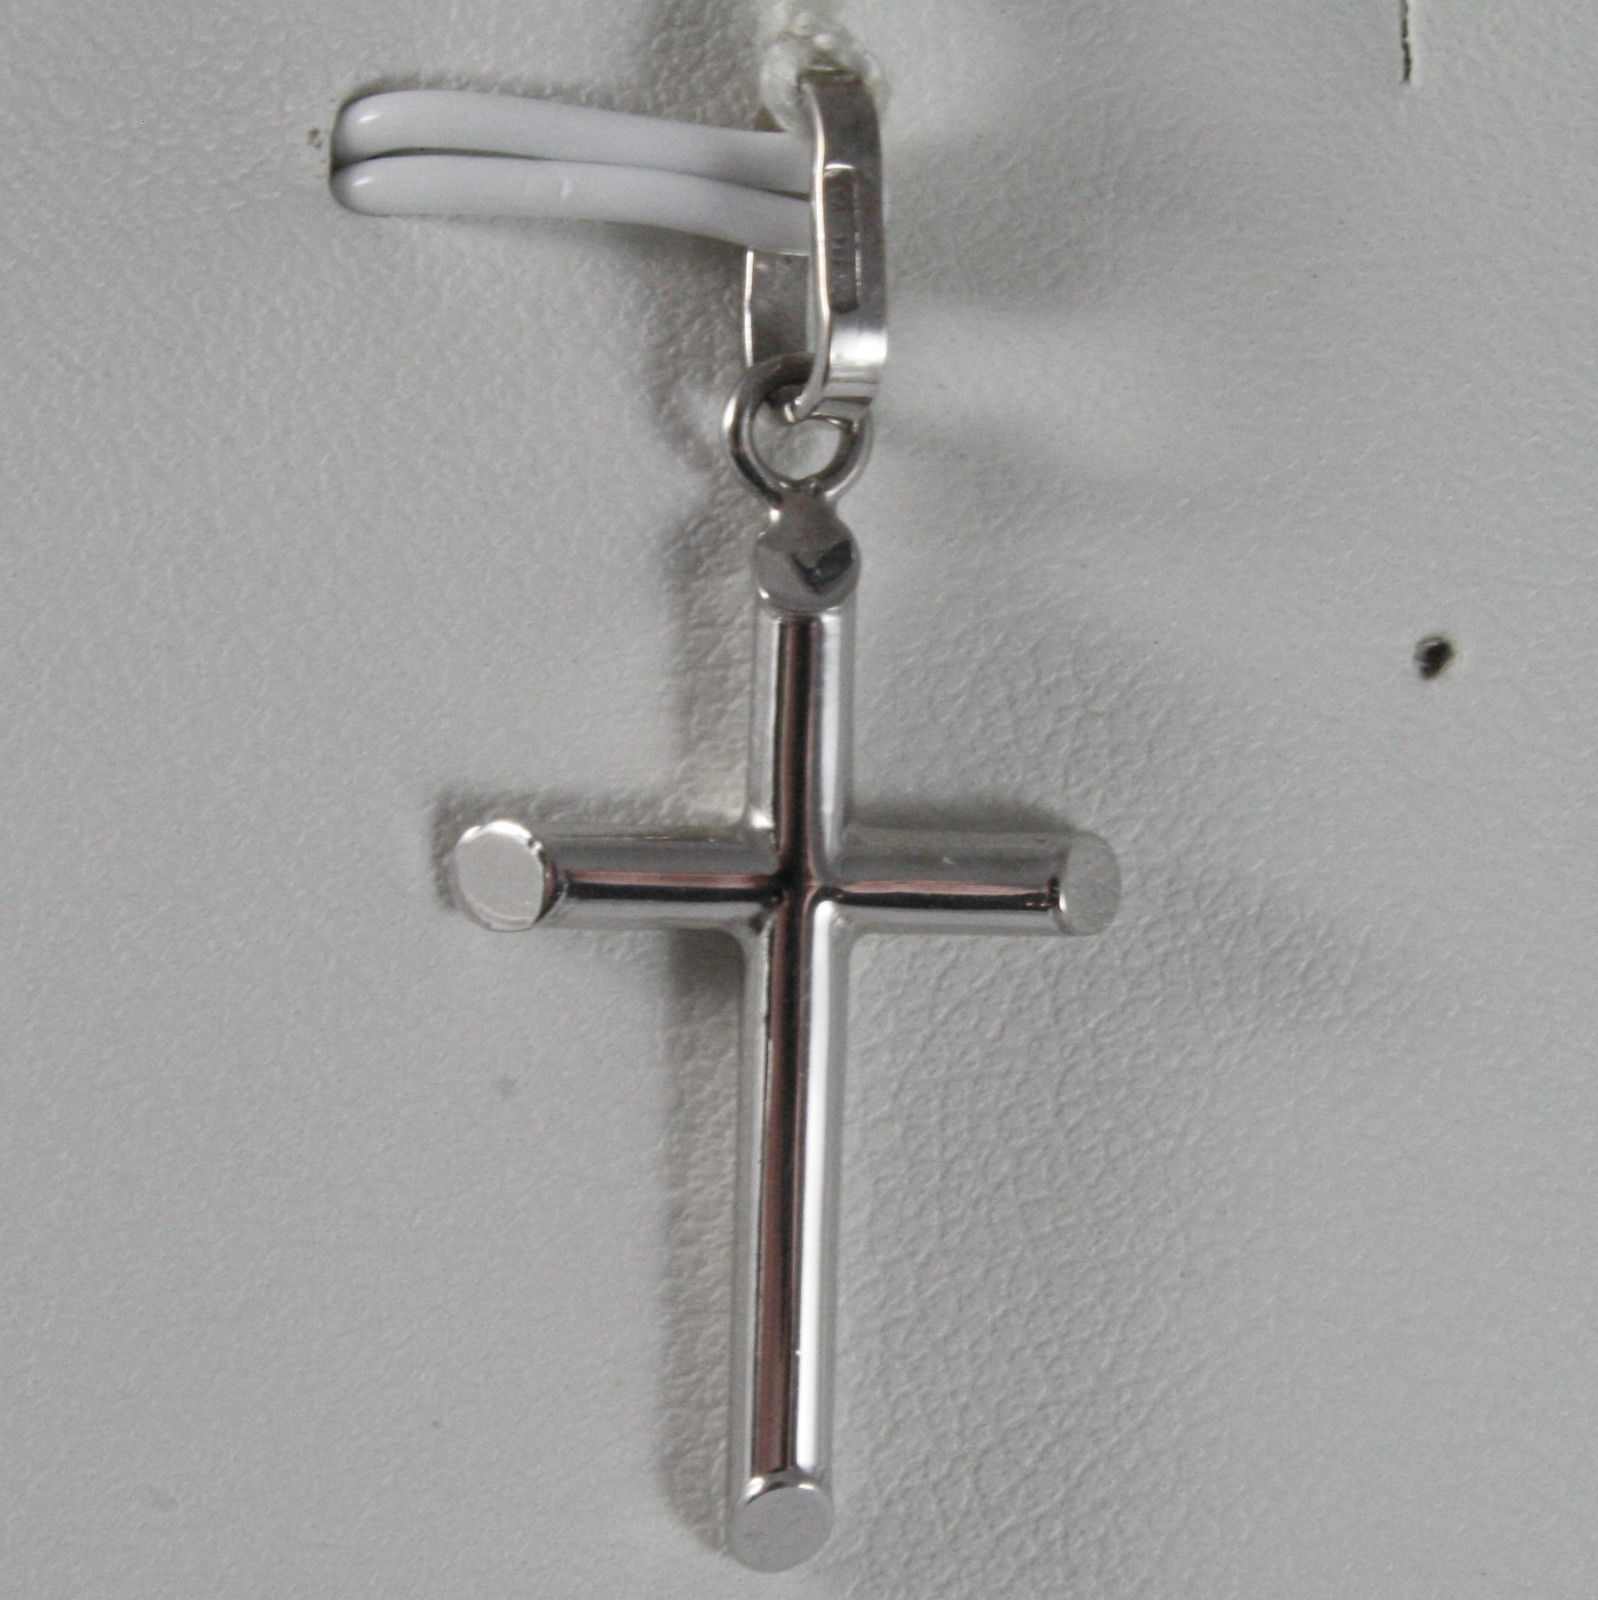 SOLID 18K WHITE GOLD CROSS, TUBE, SHINY 1.26, MADE IN ITALY